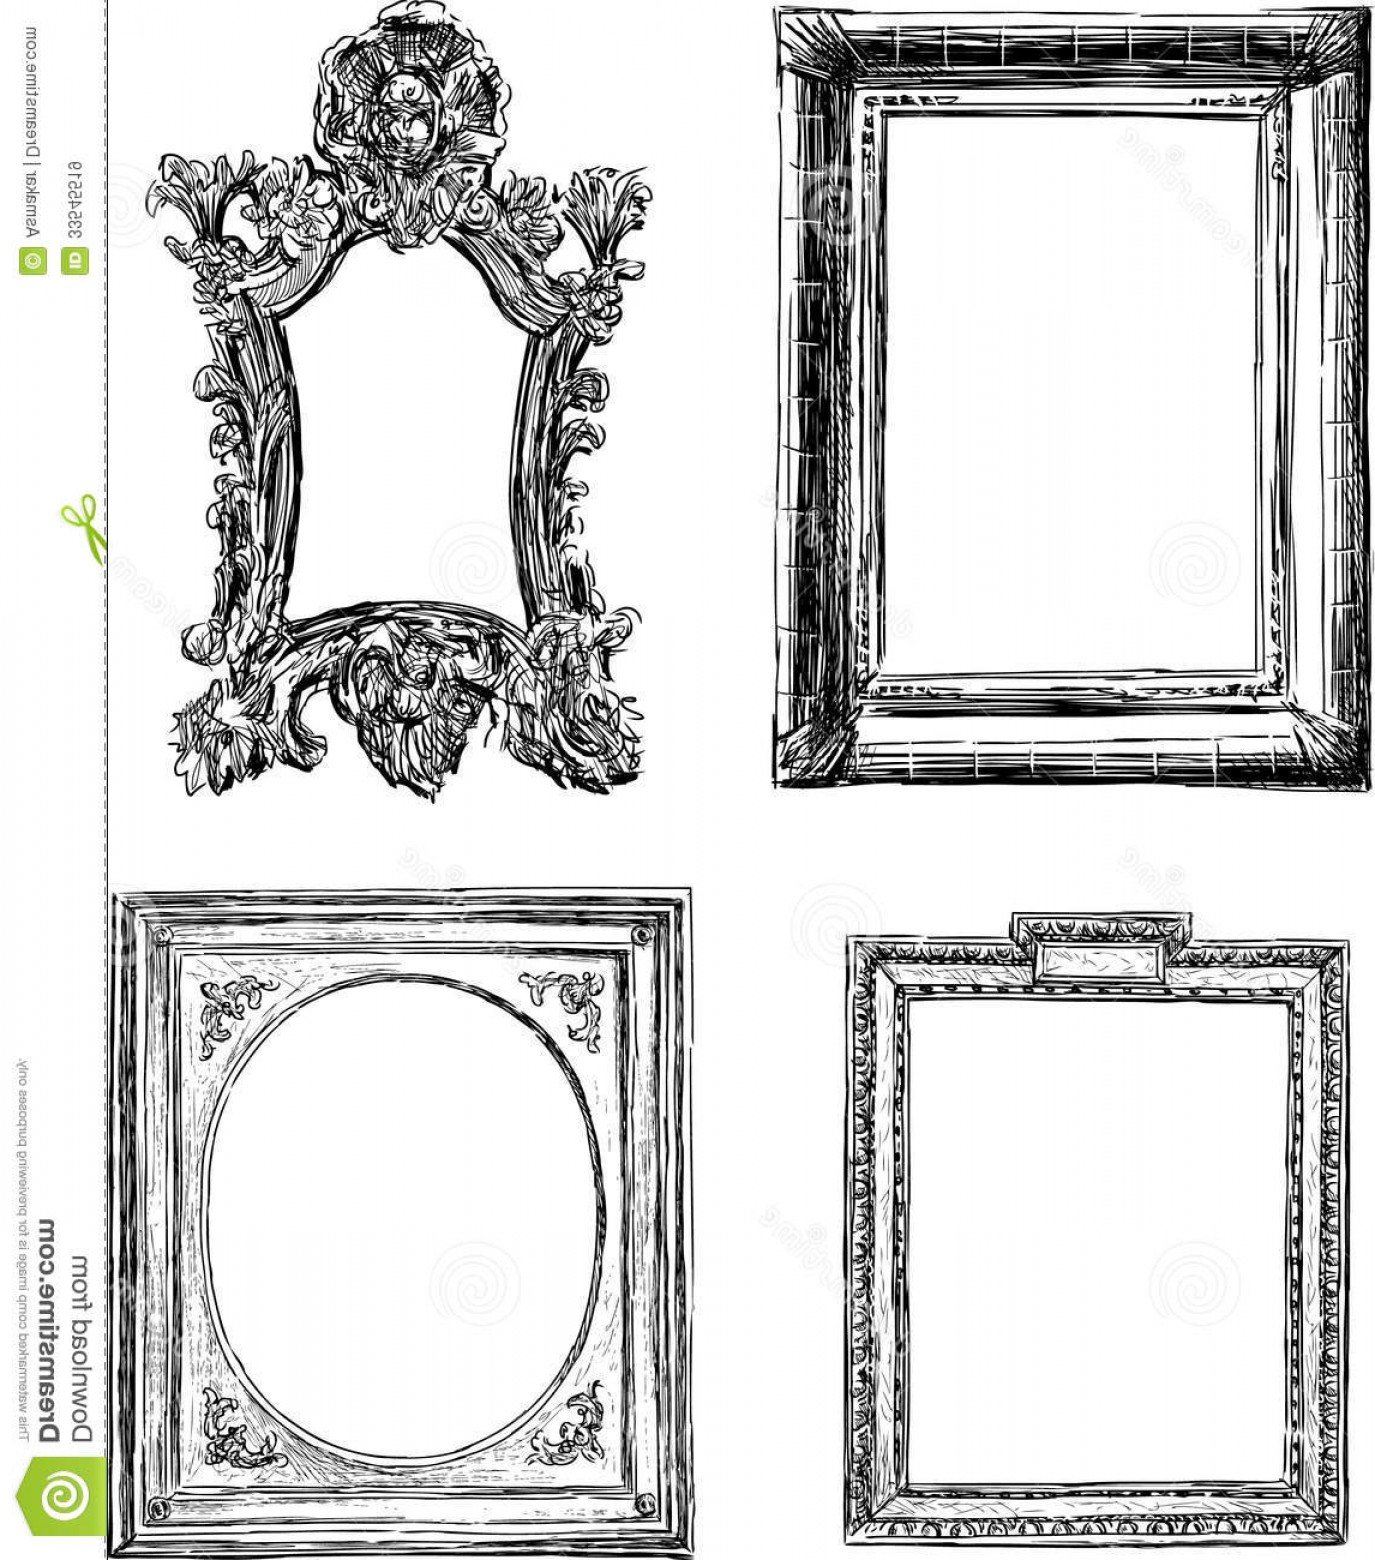 Antique Frames Vector: Royalty Free Stock Images Antique Decorative Frames Vector Drawing Frame Baroque Style Image